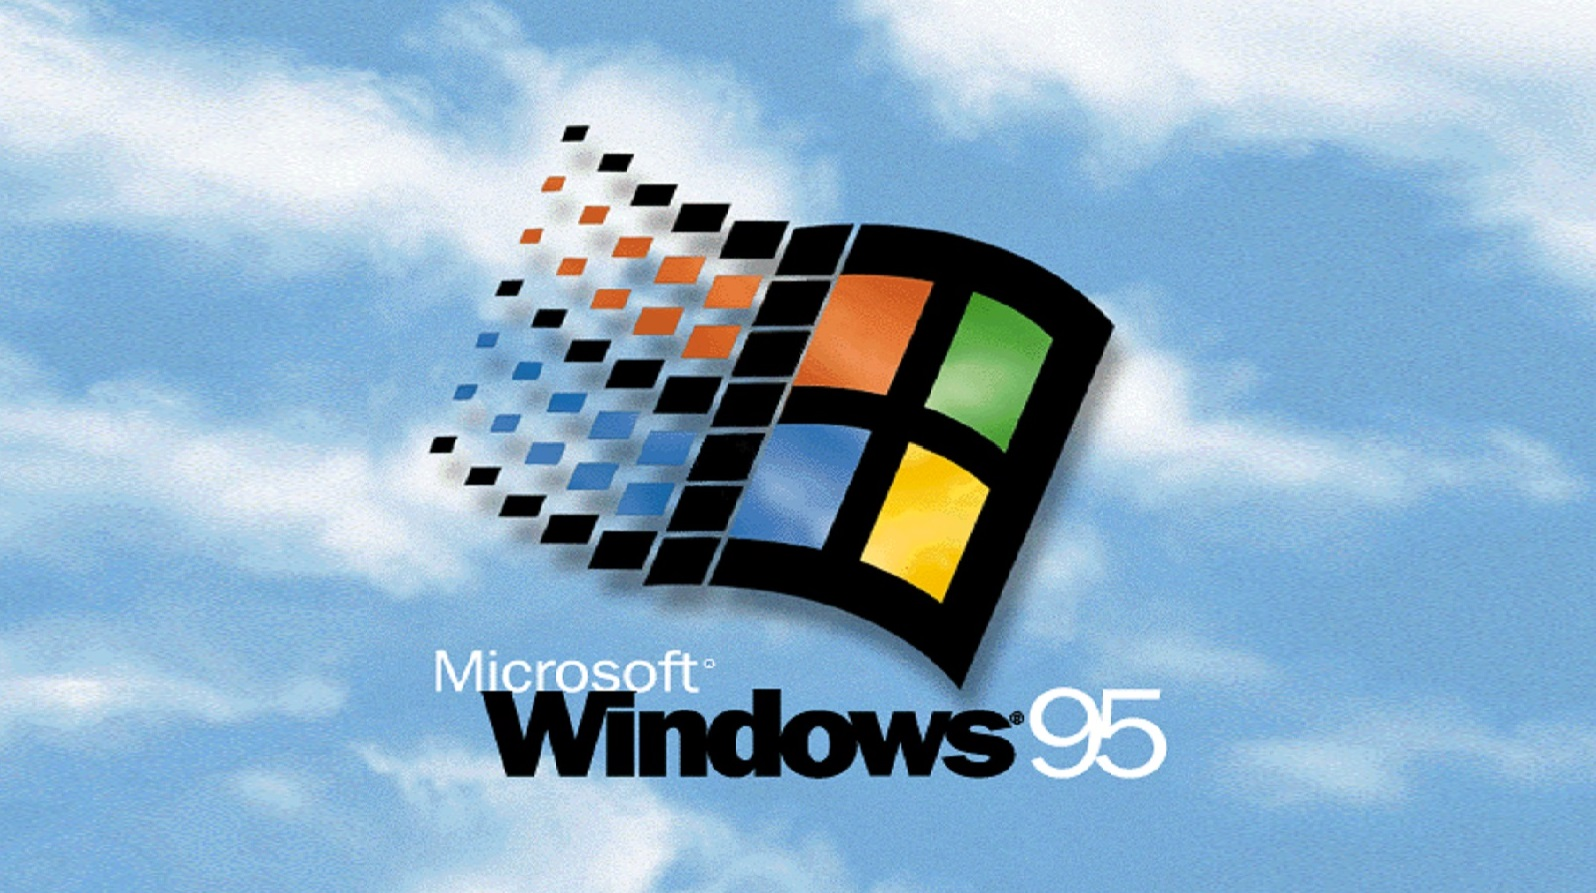 Windows 95 widescreen.jpg